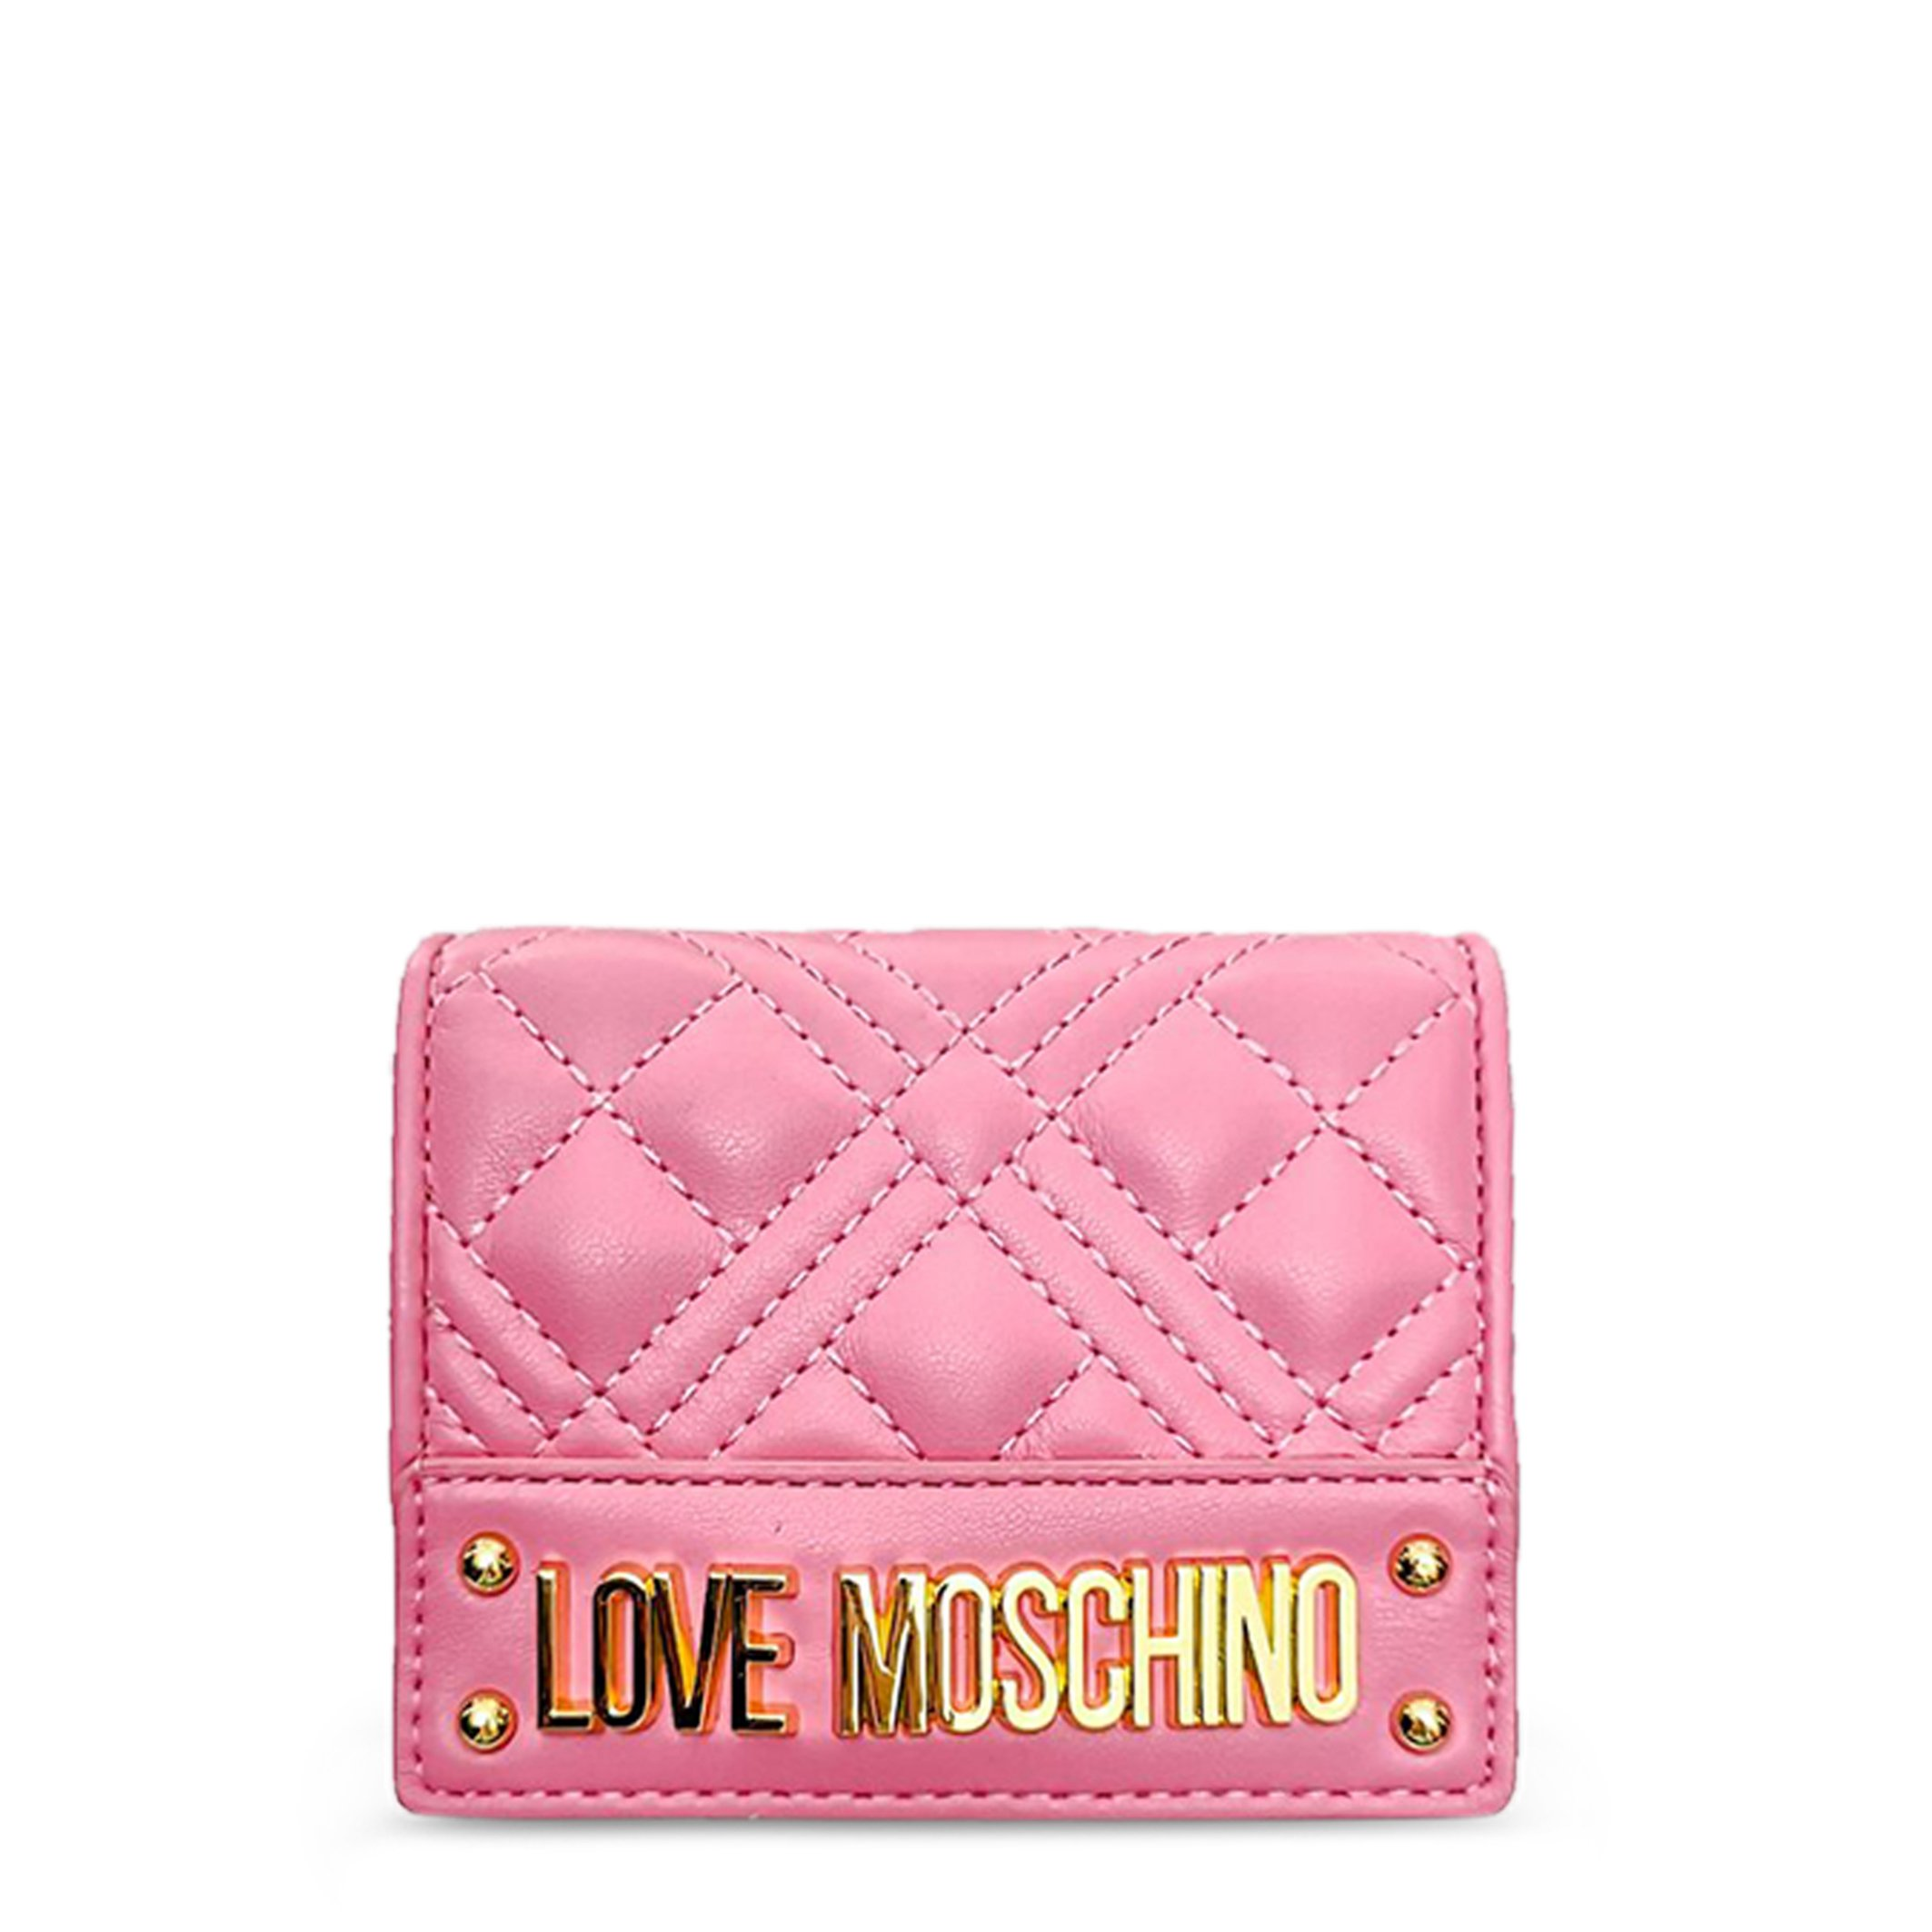 Love Moschino Women's Wallet Various Colours JC5628PP0CKA0 - pink NOSIZE